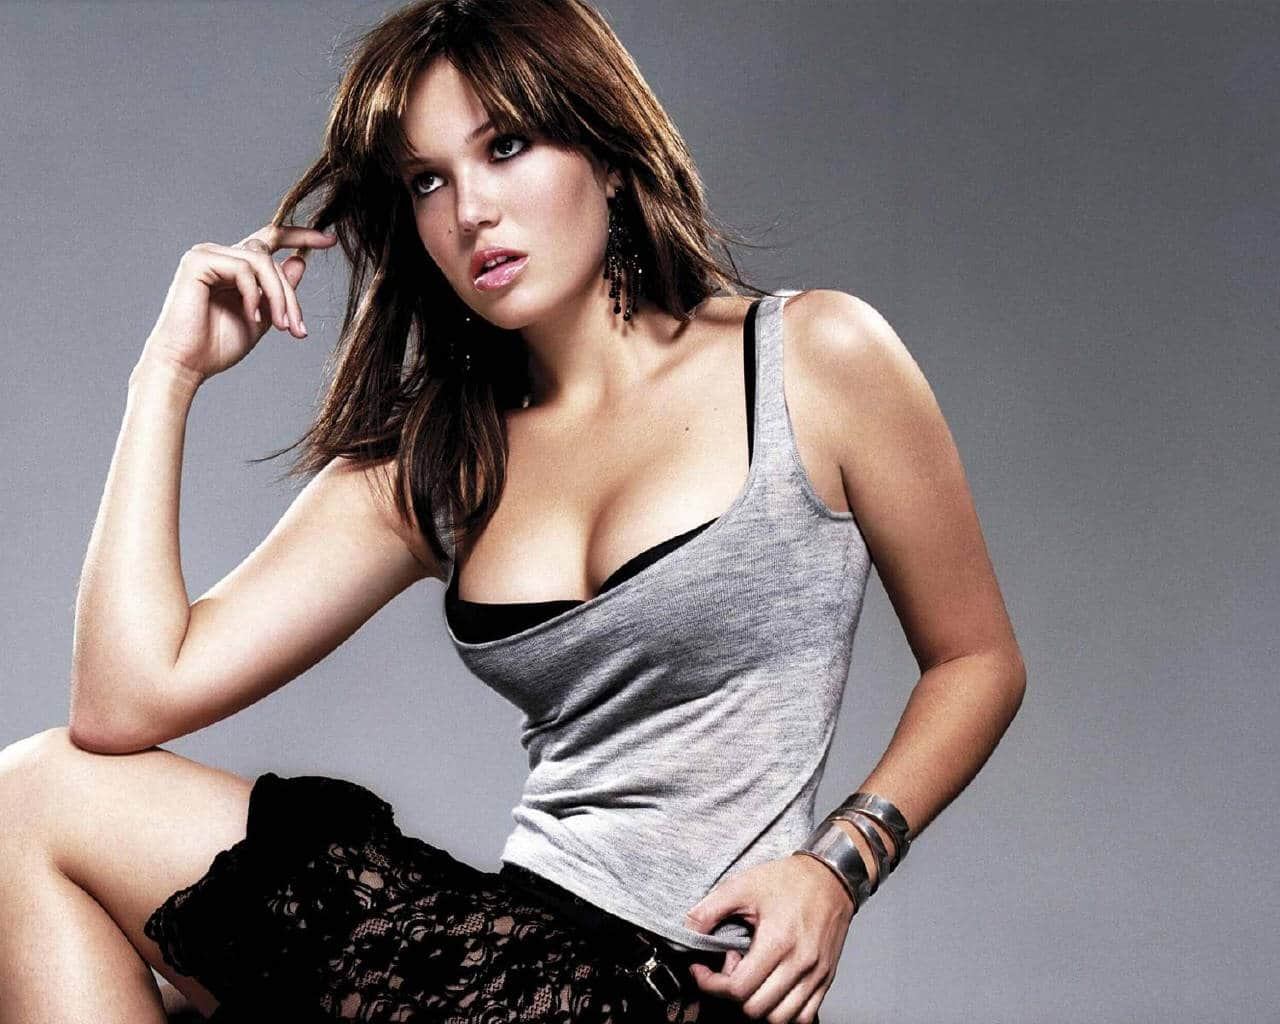 Mandy Moore American Actress, Model, Fashion Designer